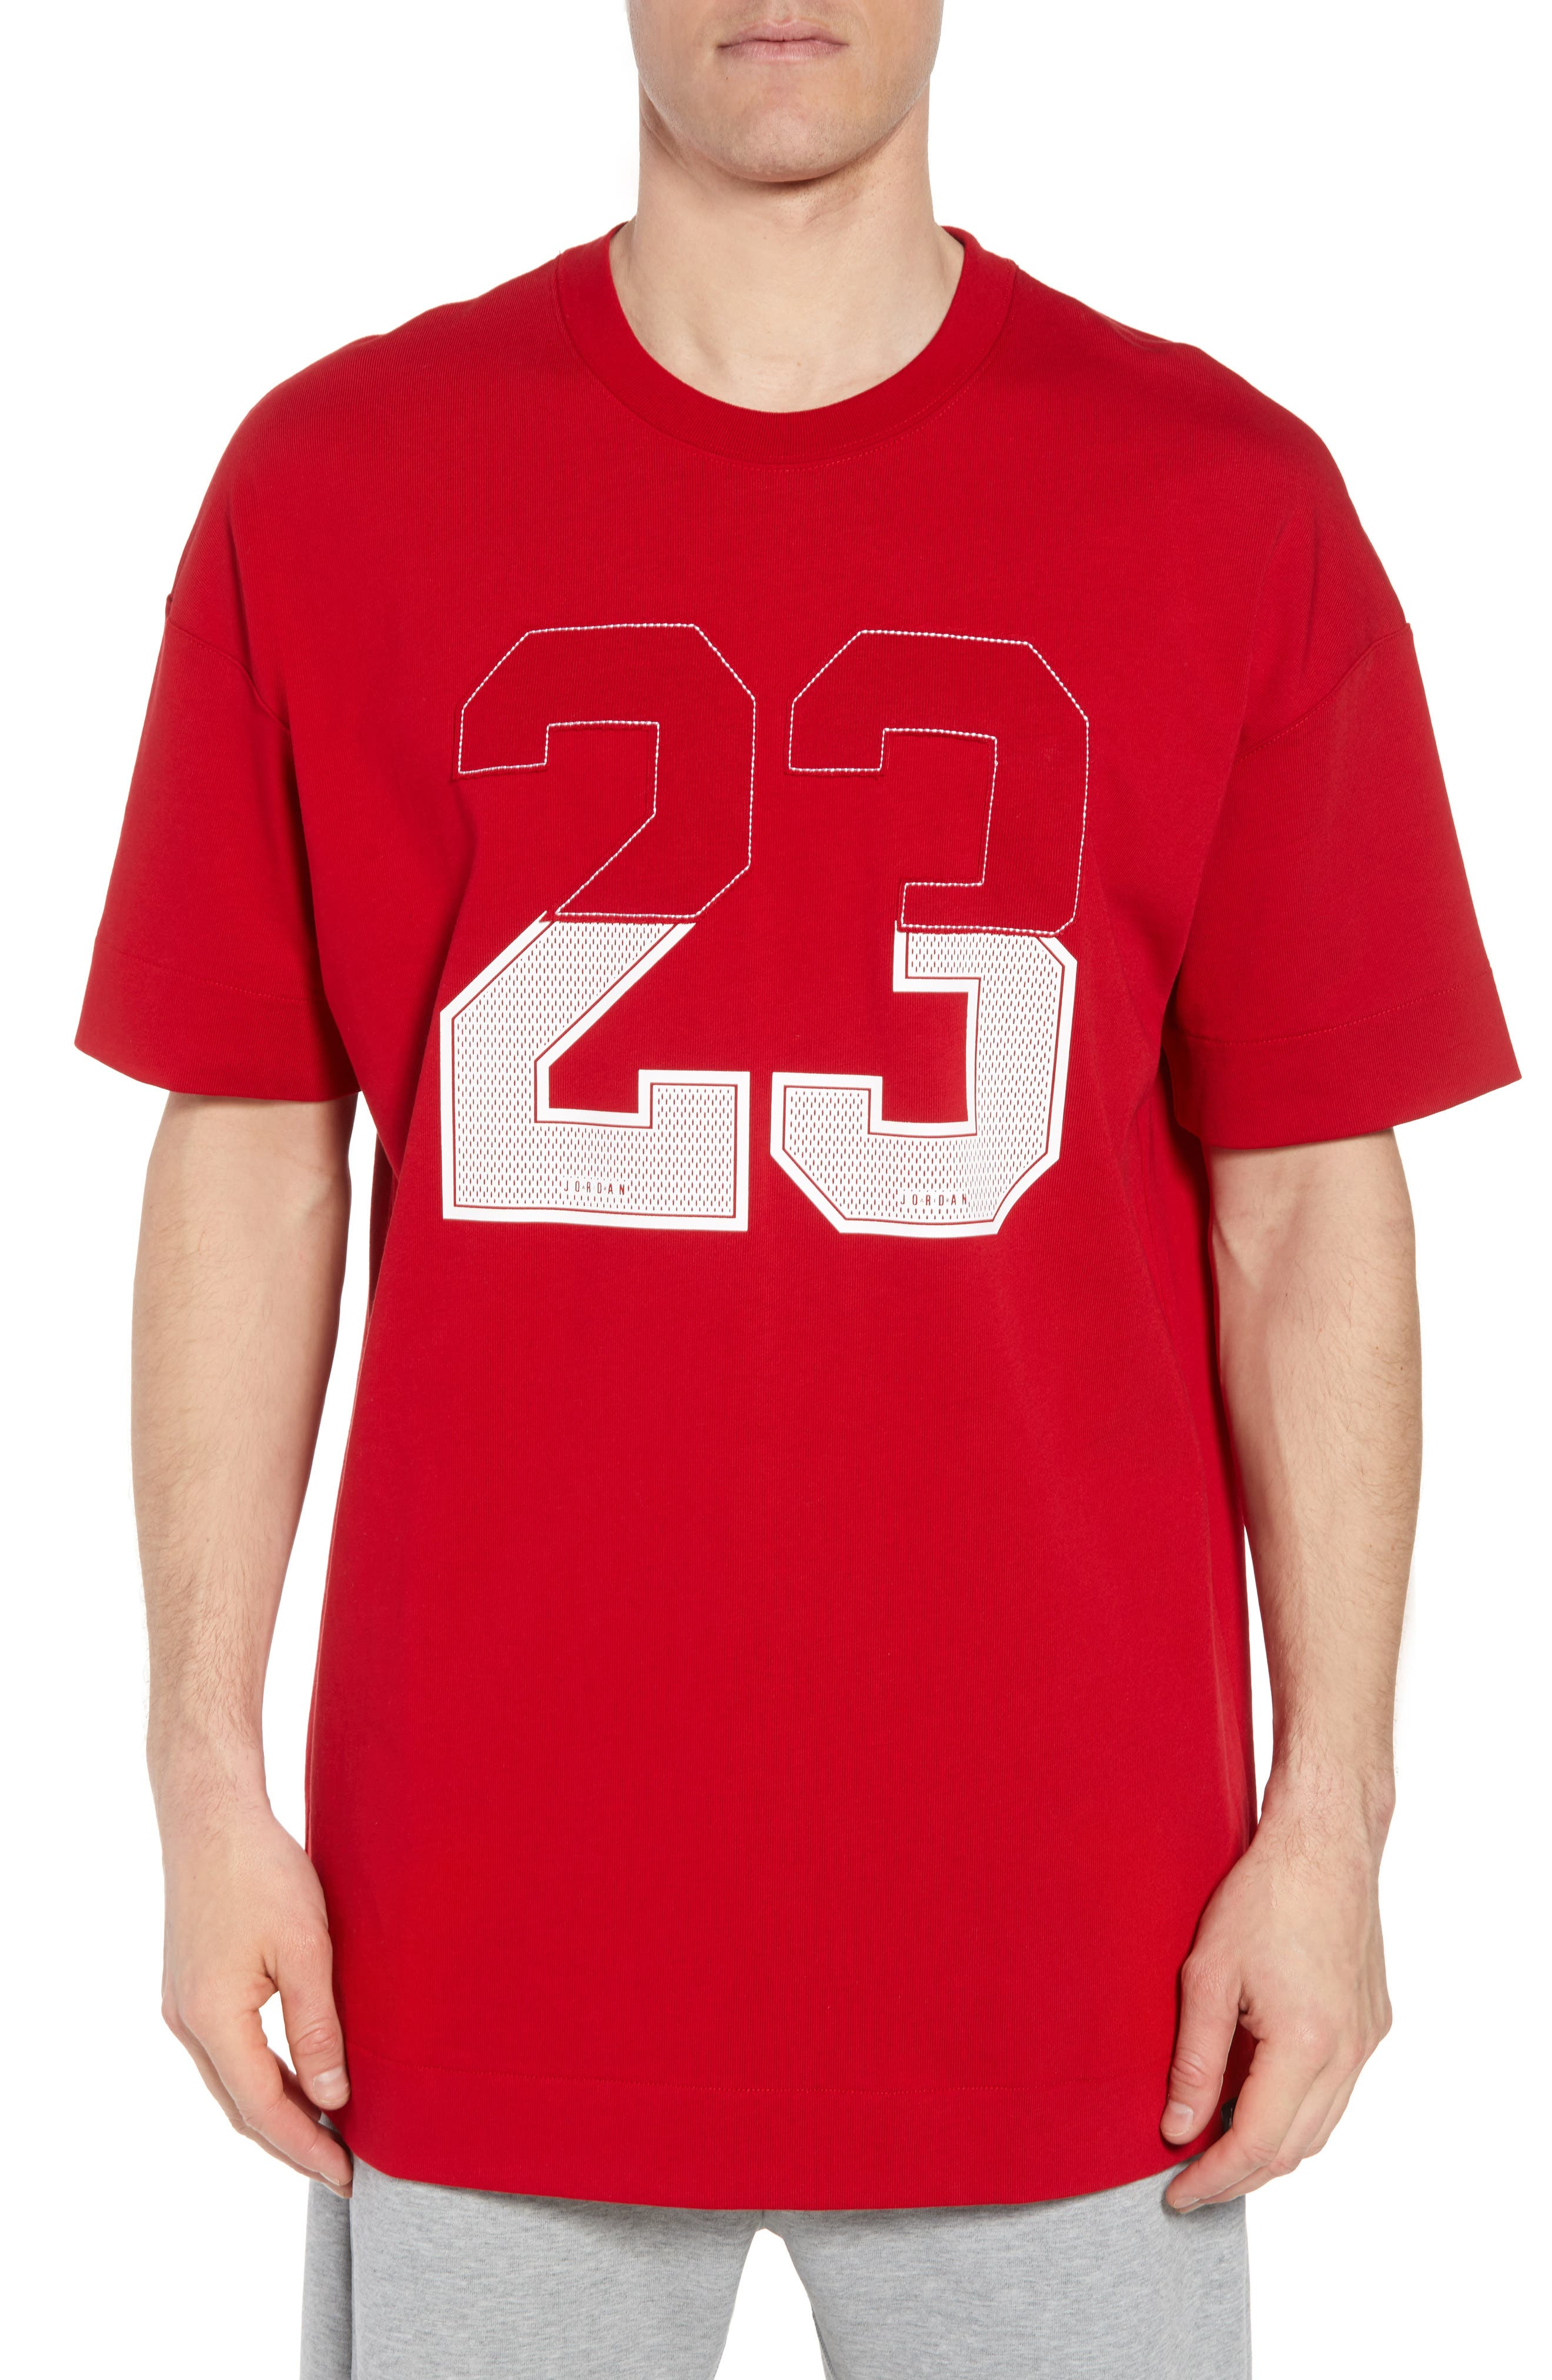 Nike Oversize 23 Graphic T-Shirt,                         Main,                         color, GYM RED/ WHITE